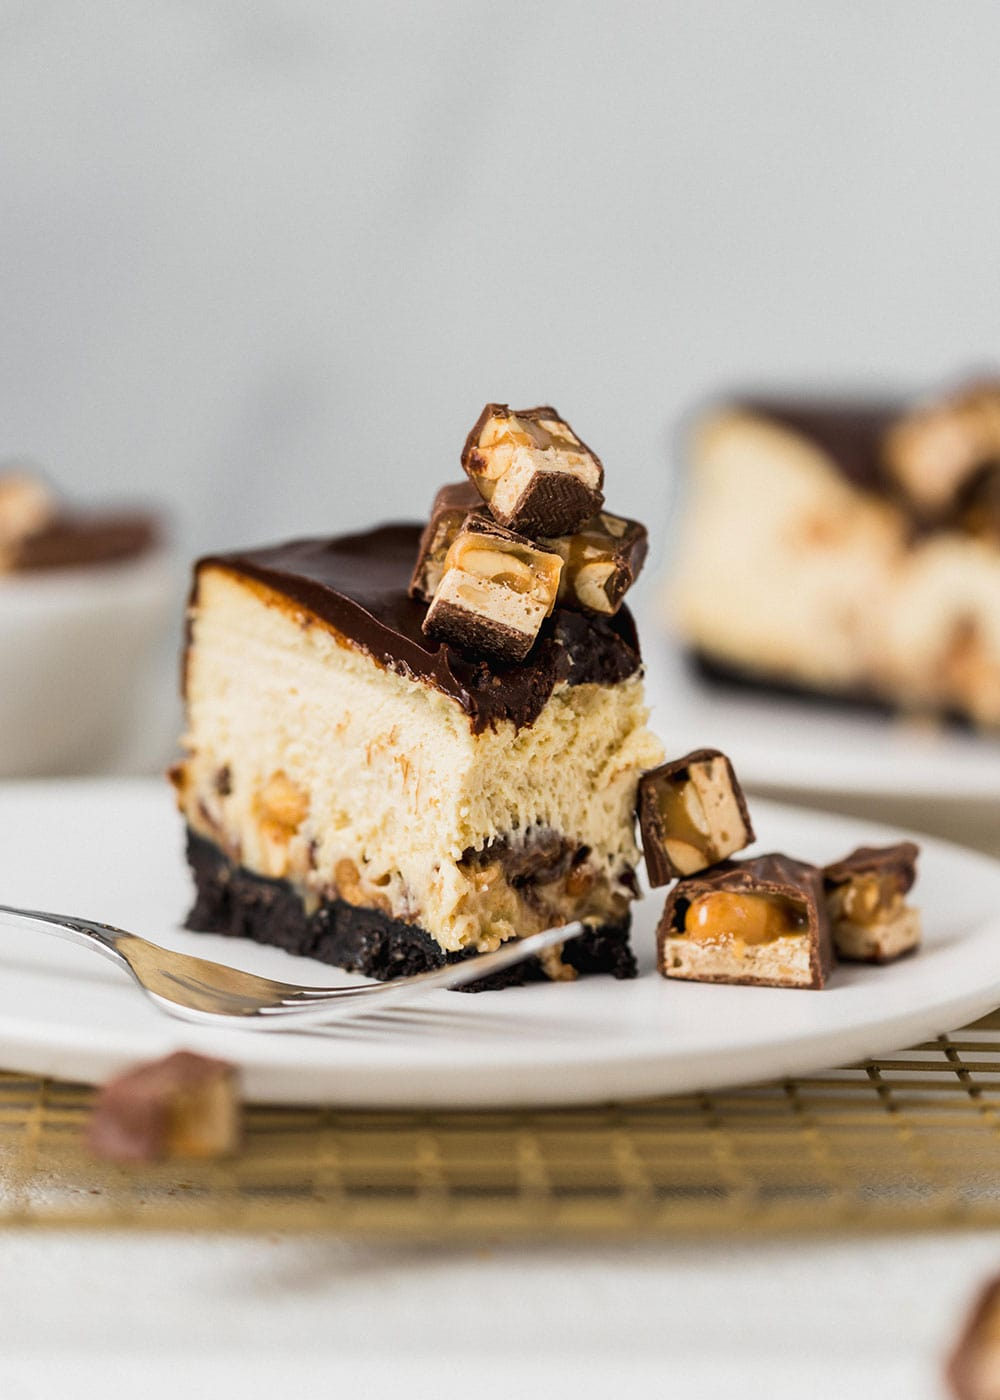 Who could resist this over the top Snickers Cheesecake?!